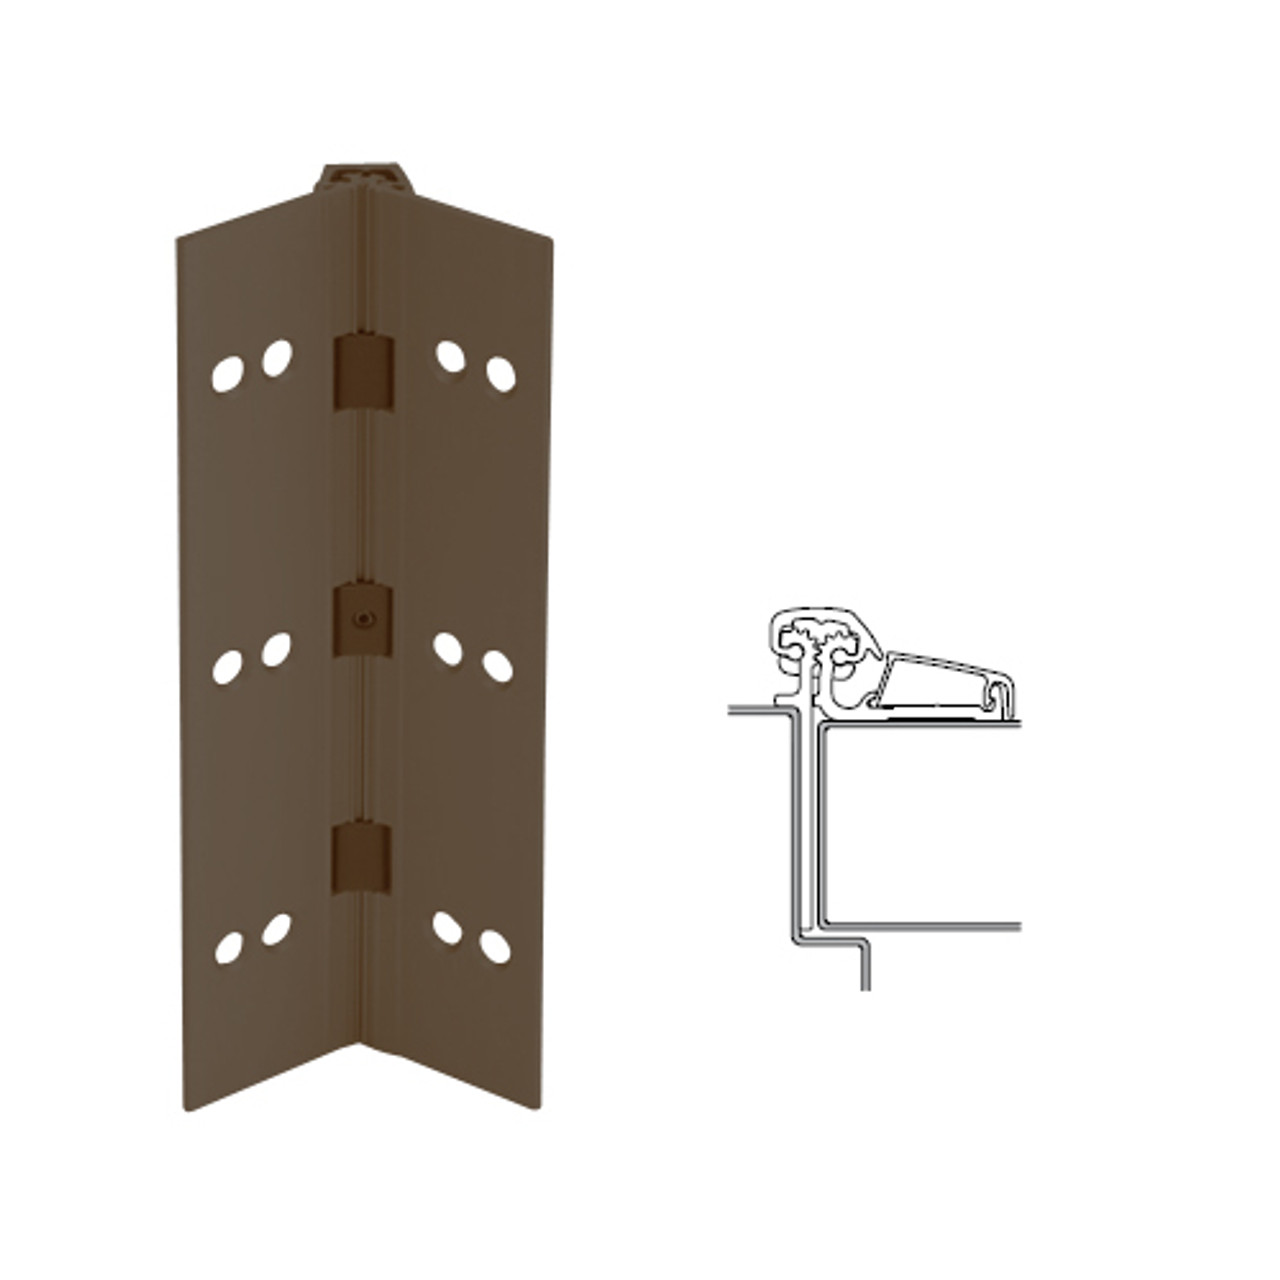 054XY-313AN-120-TF IVES Adjustable Half Surface Continuous Geared Hinges with Thread Forming Screws in Dark Bronze Anodized